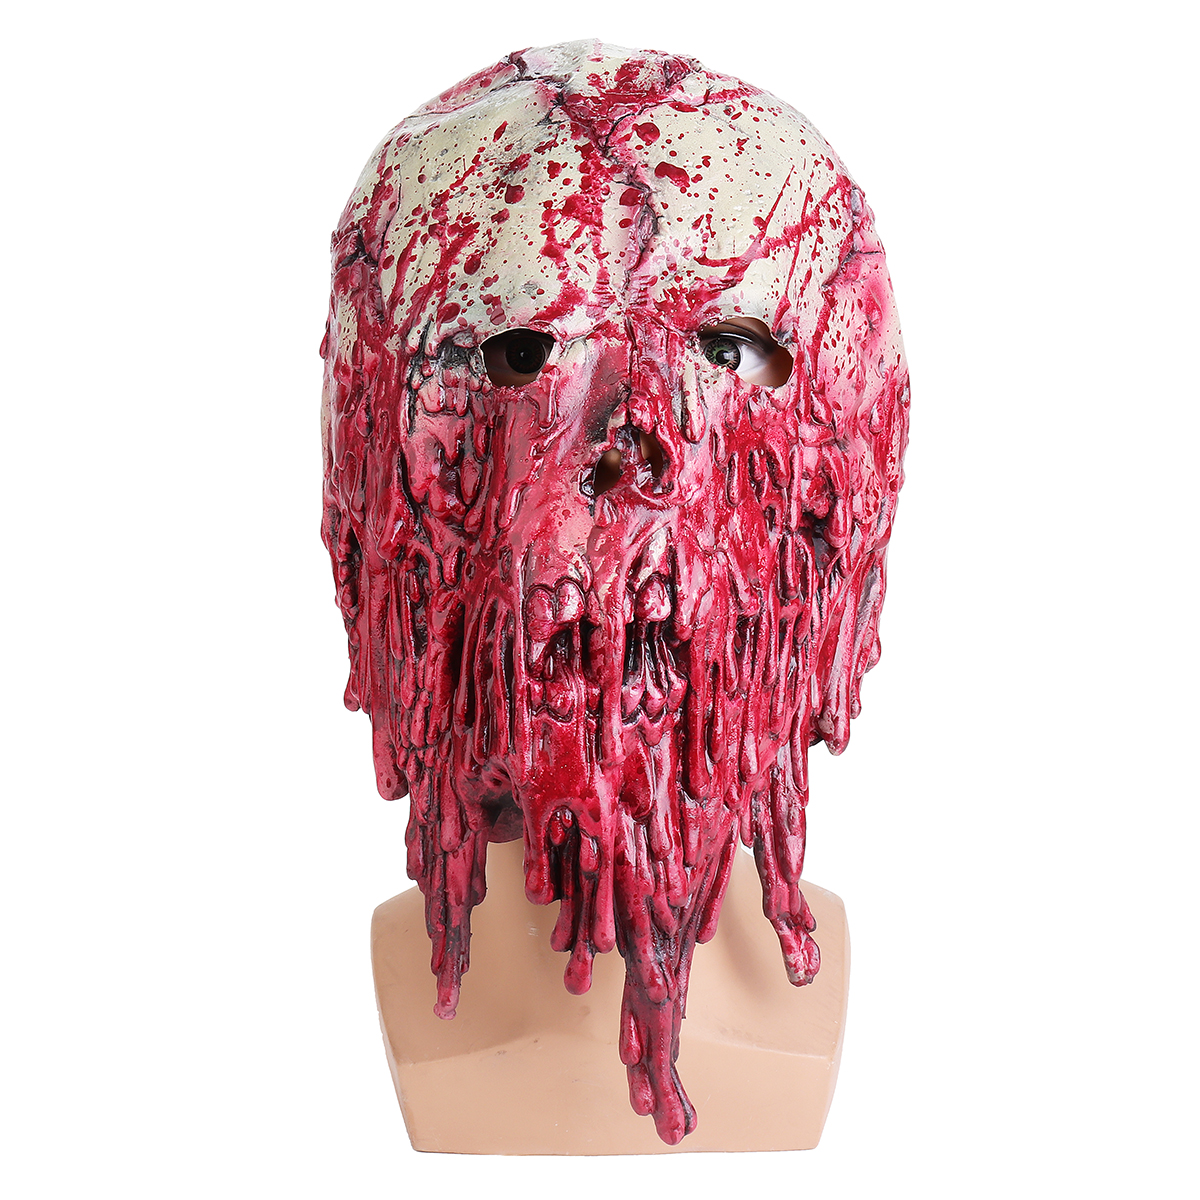 Halloween Mask Bloody Festival Skull Zombie Latex Cosplay Horror Costume Props Mask